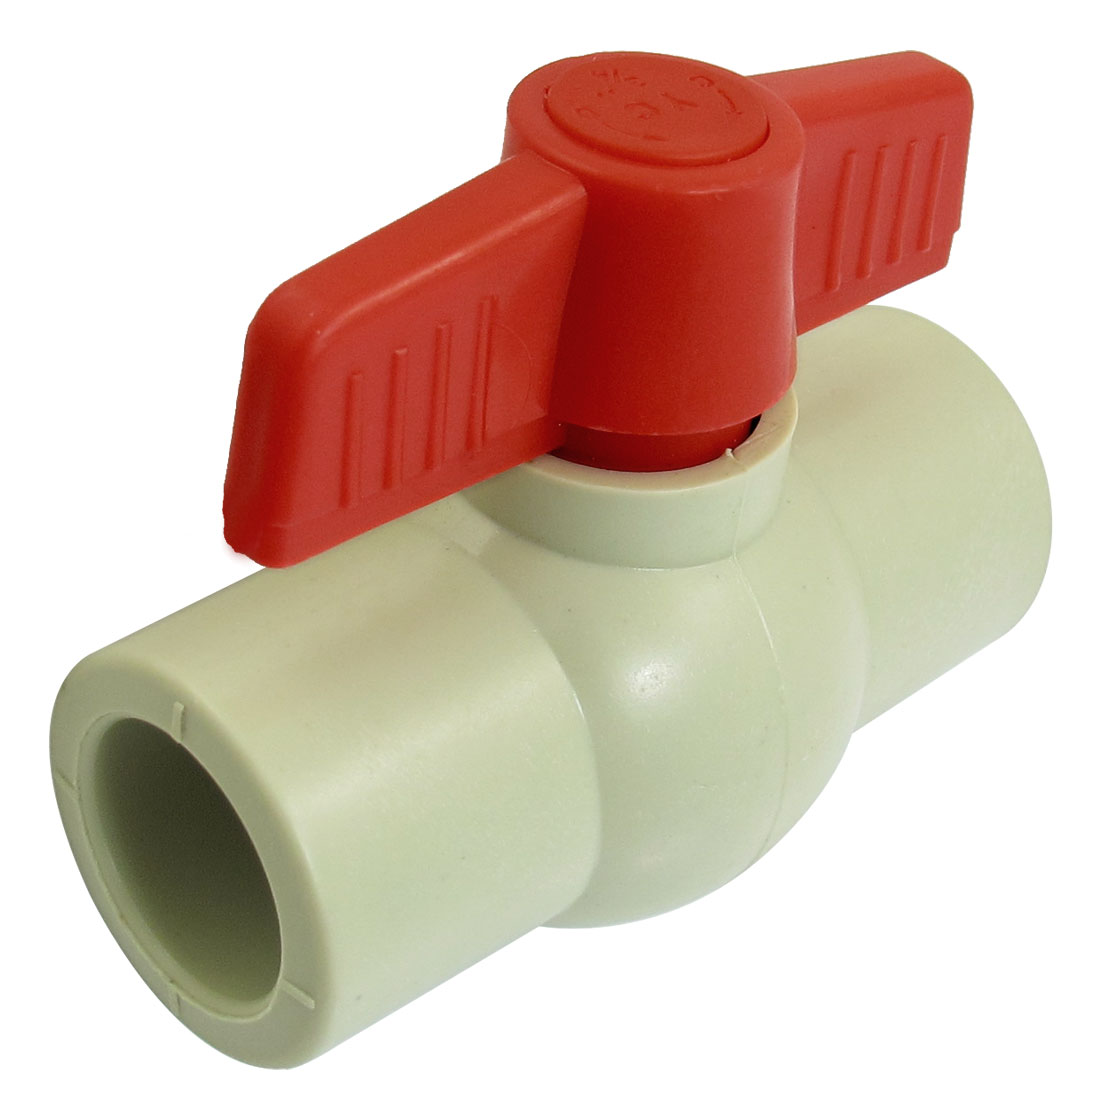 Red Handle 24mm x 24mm Slip Ends Full Port PPR Ball Valve